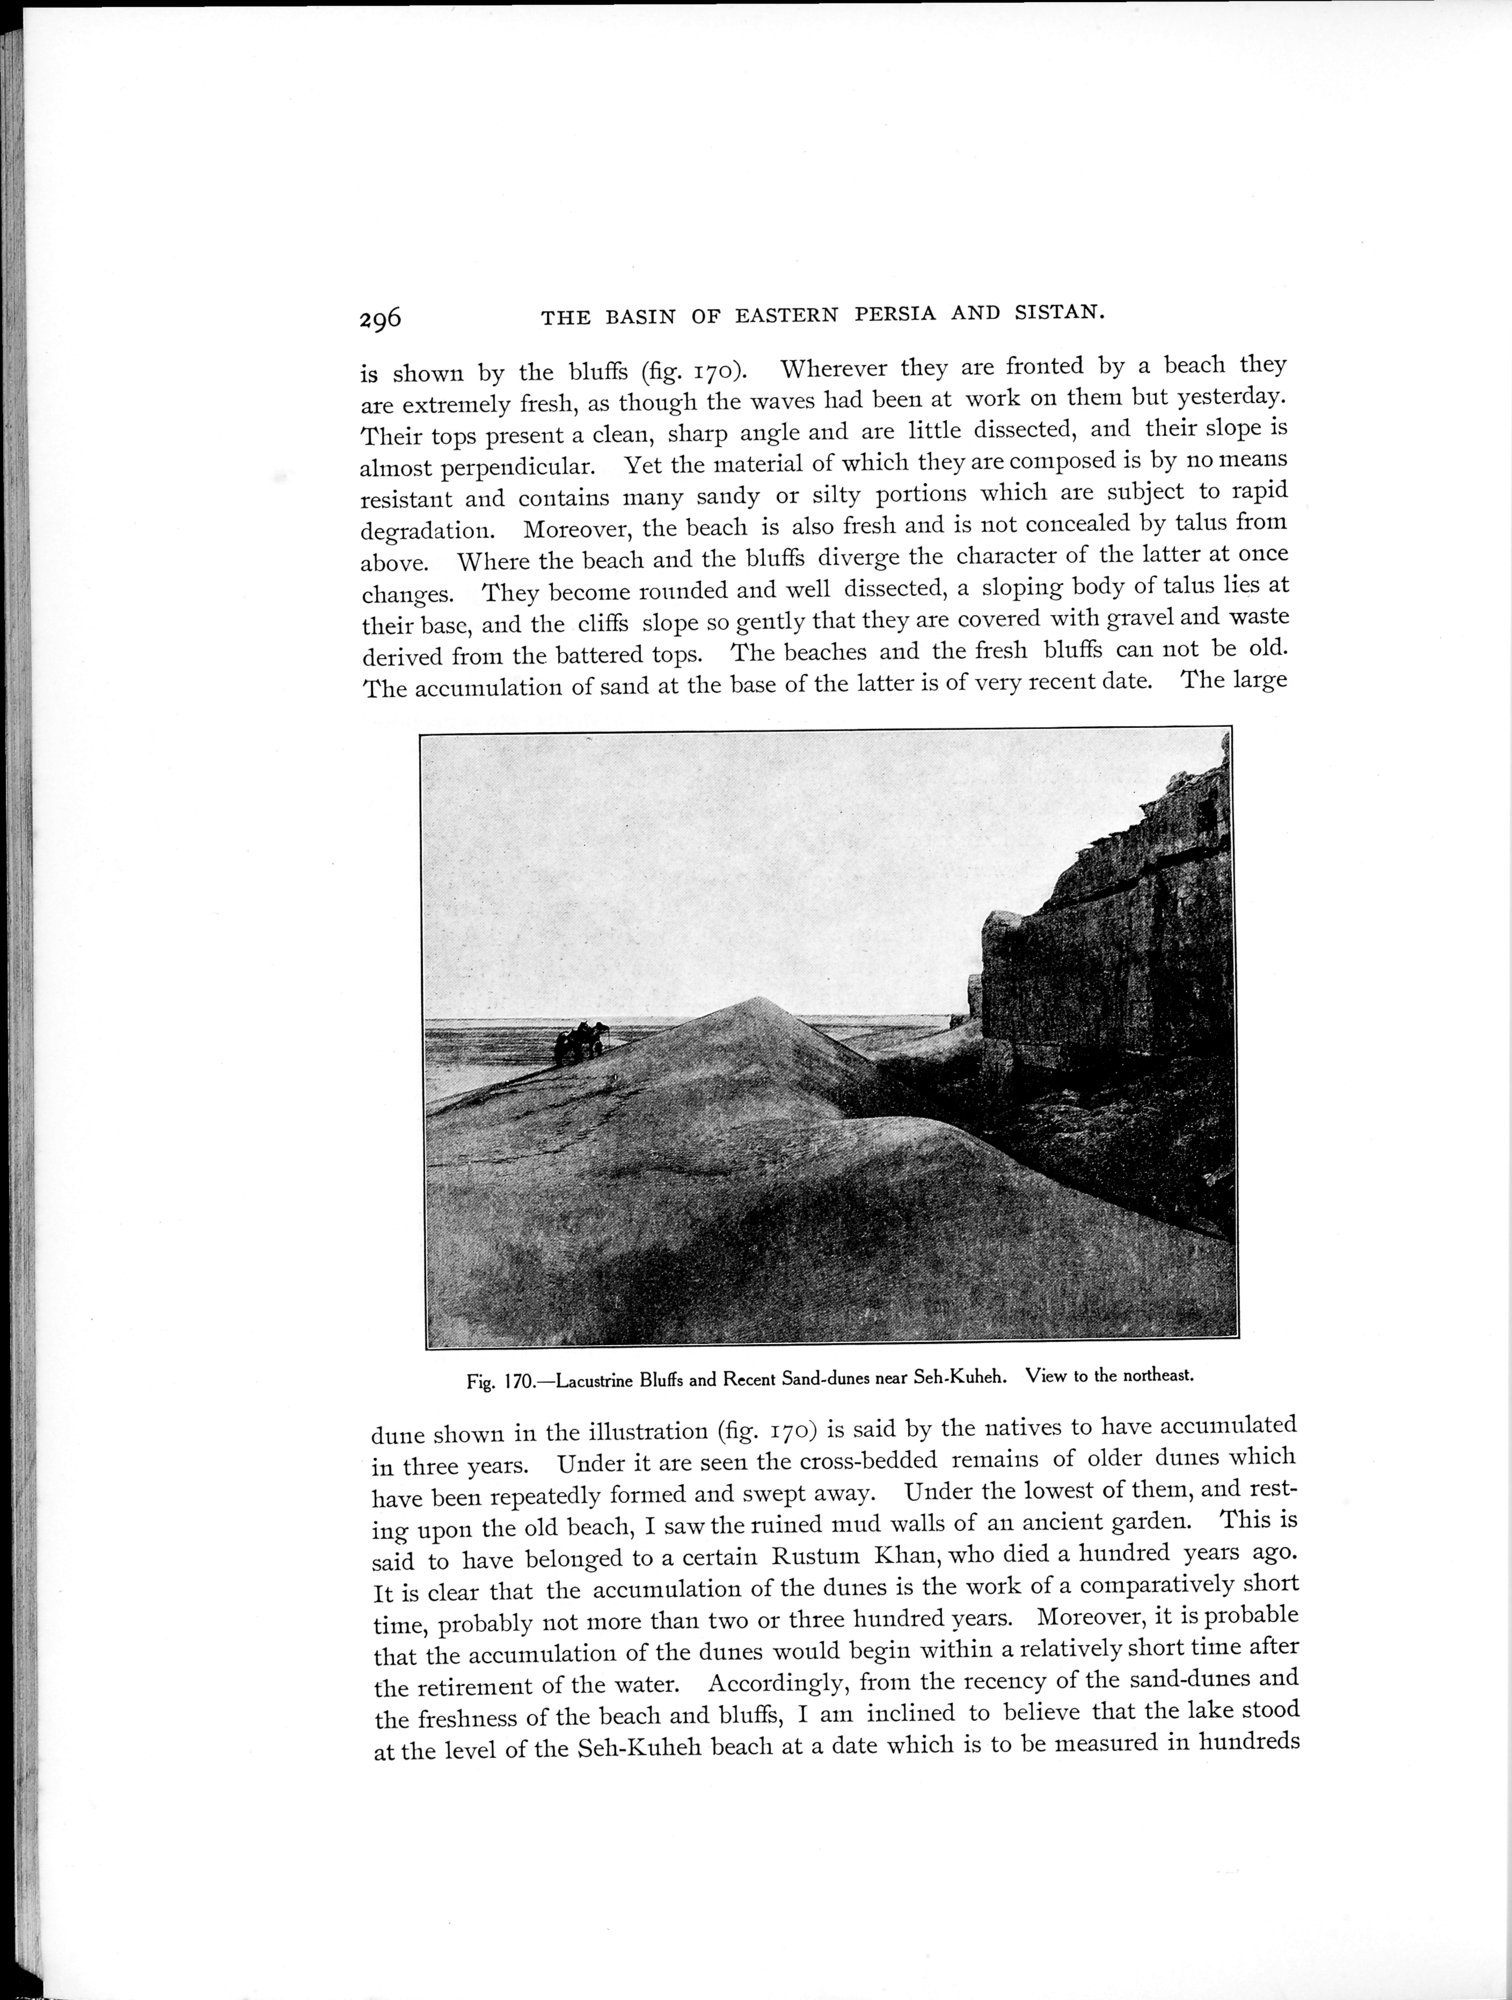 Explorations in Turkestan 1903 : vol.1 / Page 332 (Grayscale High Resolution Image)